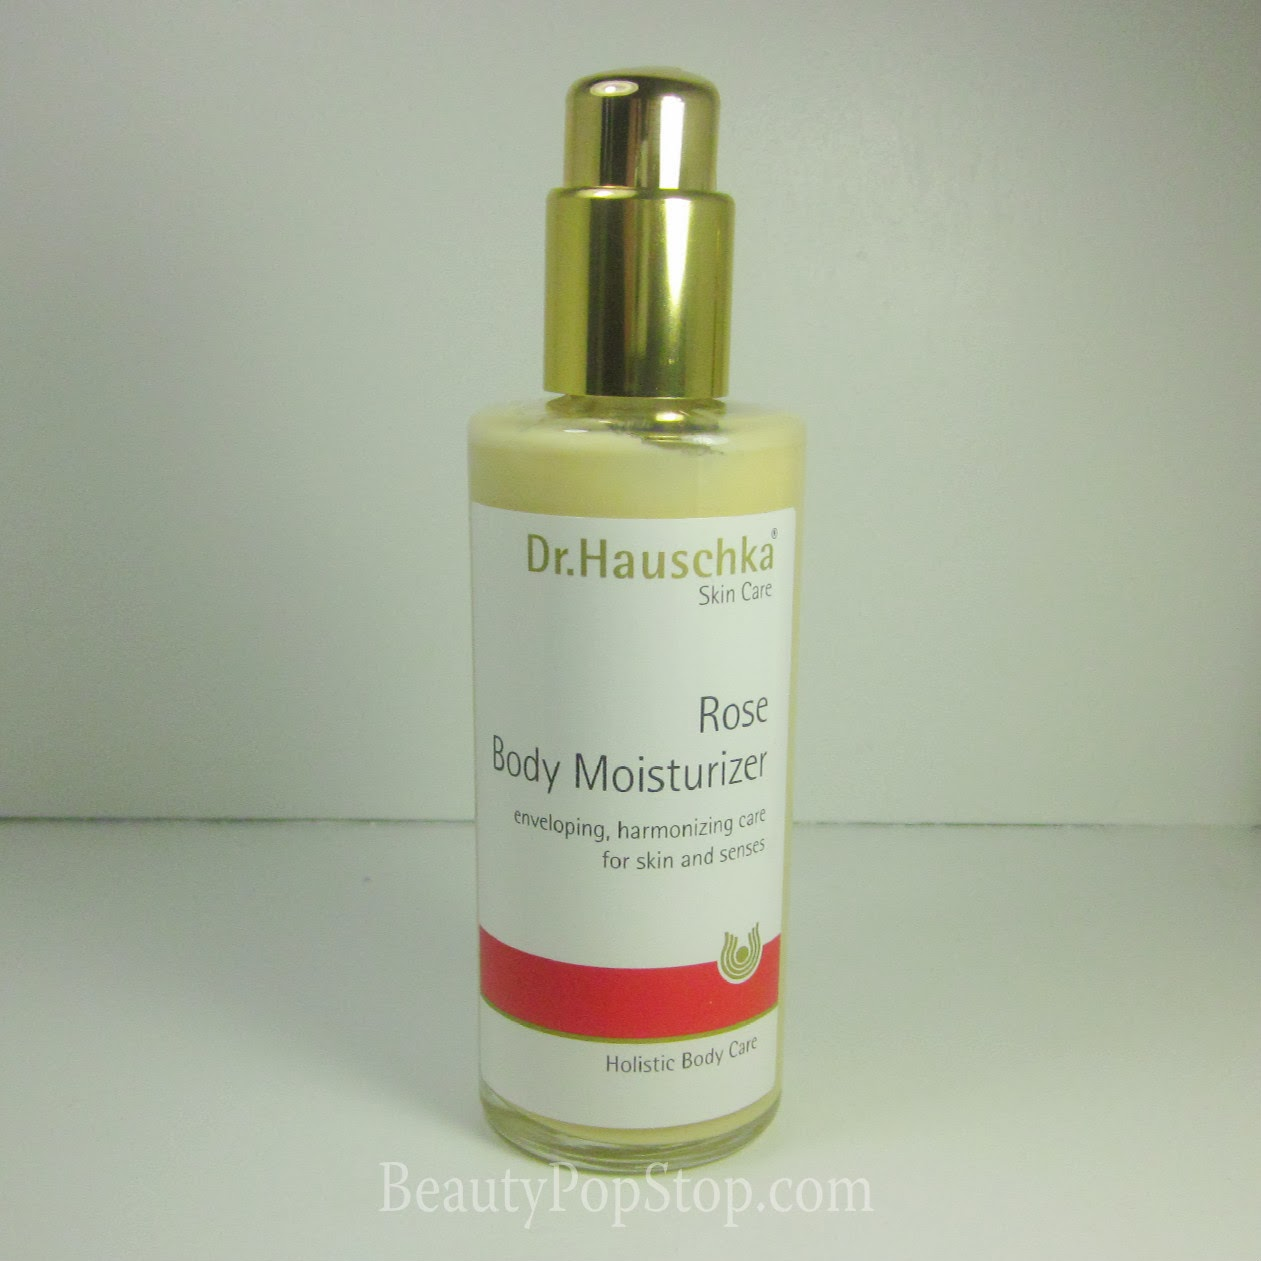 dr. hauschka rose body moisturizer review